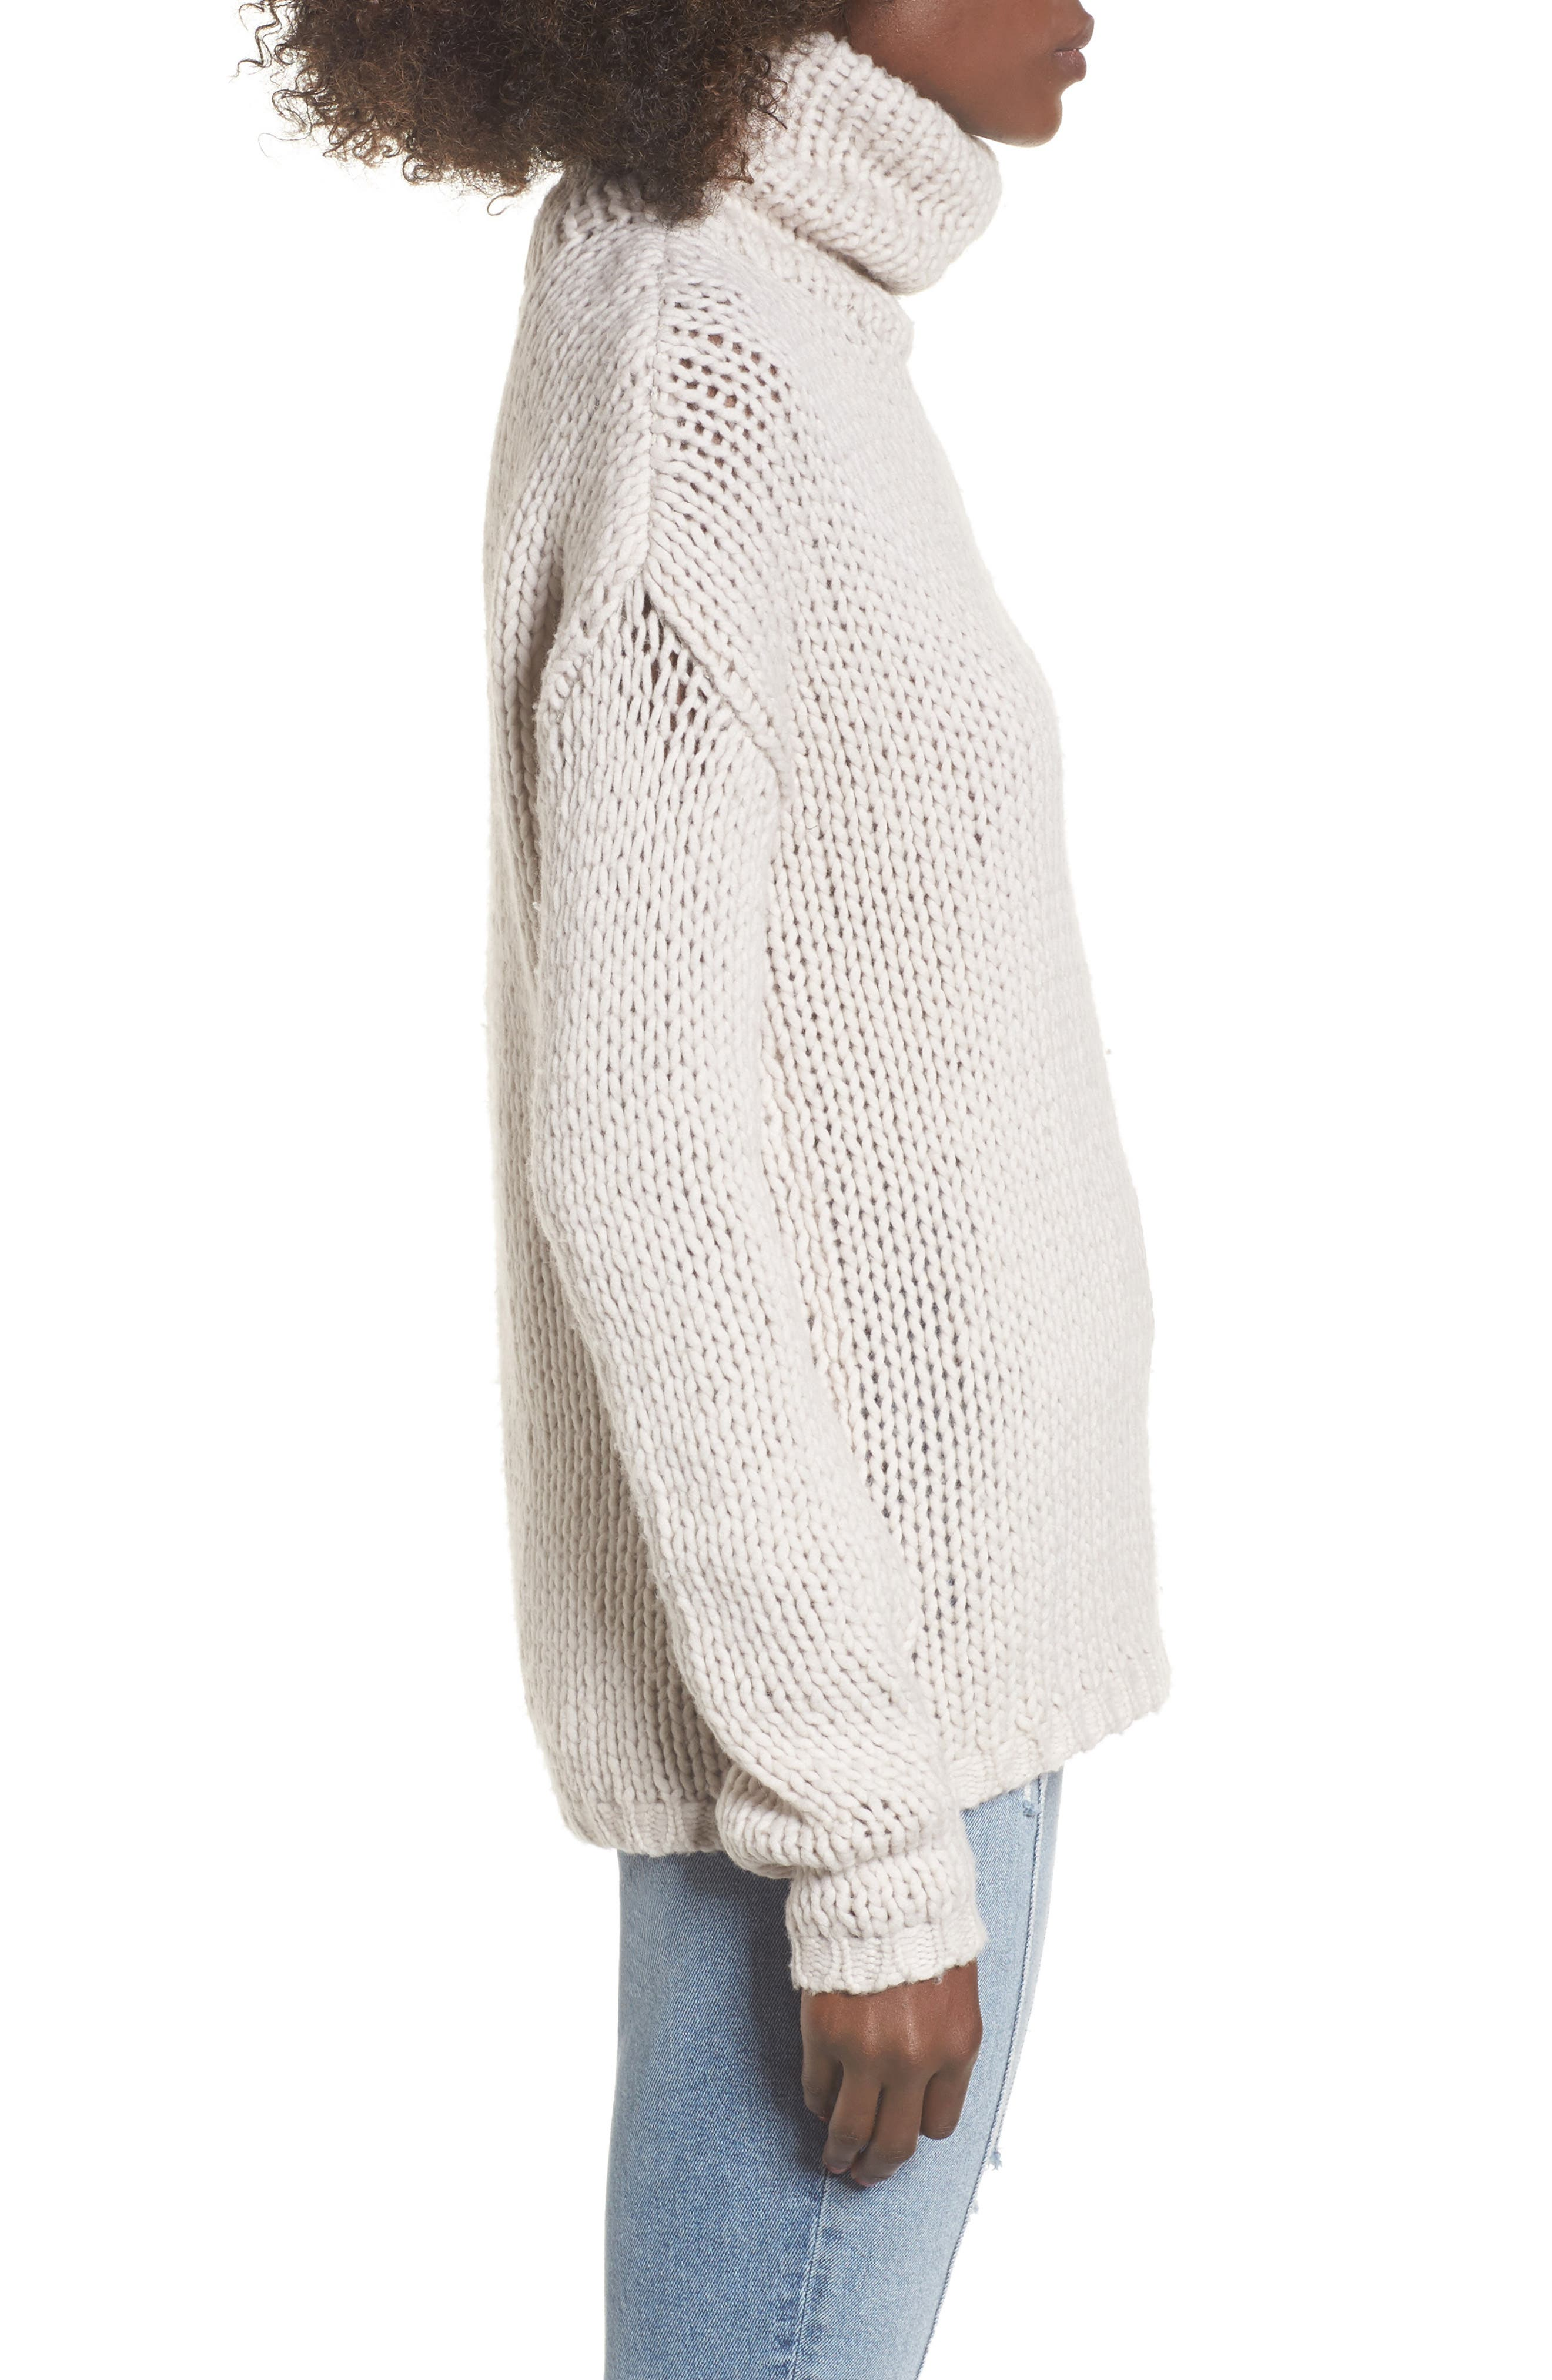 Hawken Turtleneck Sweater,                             Alternate thumbnail 3, color,                             Pearl